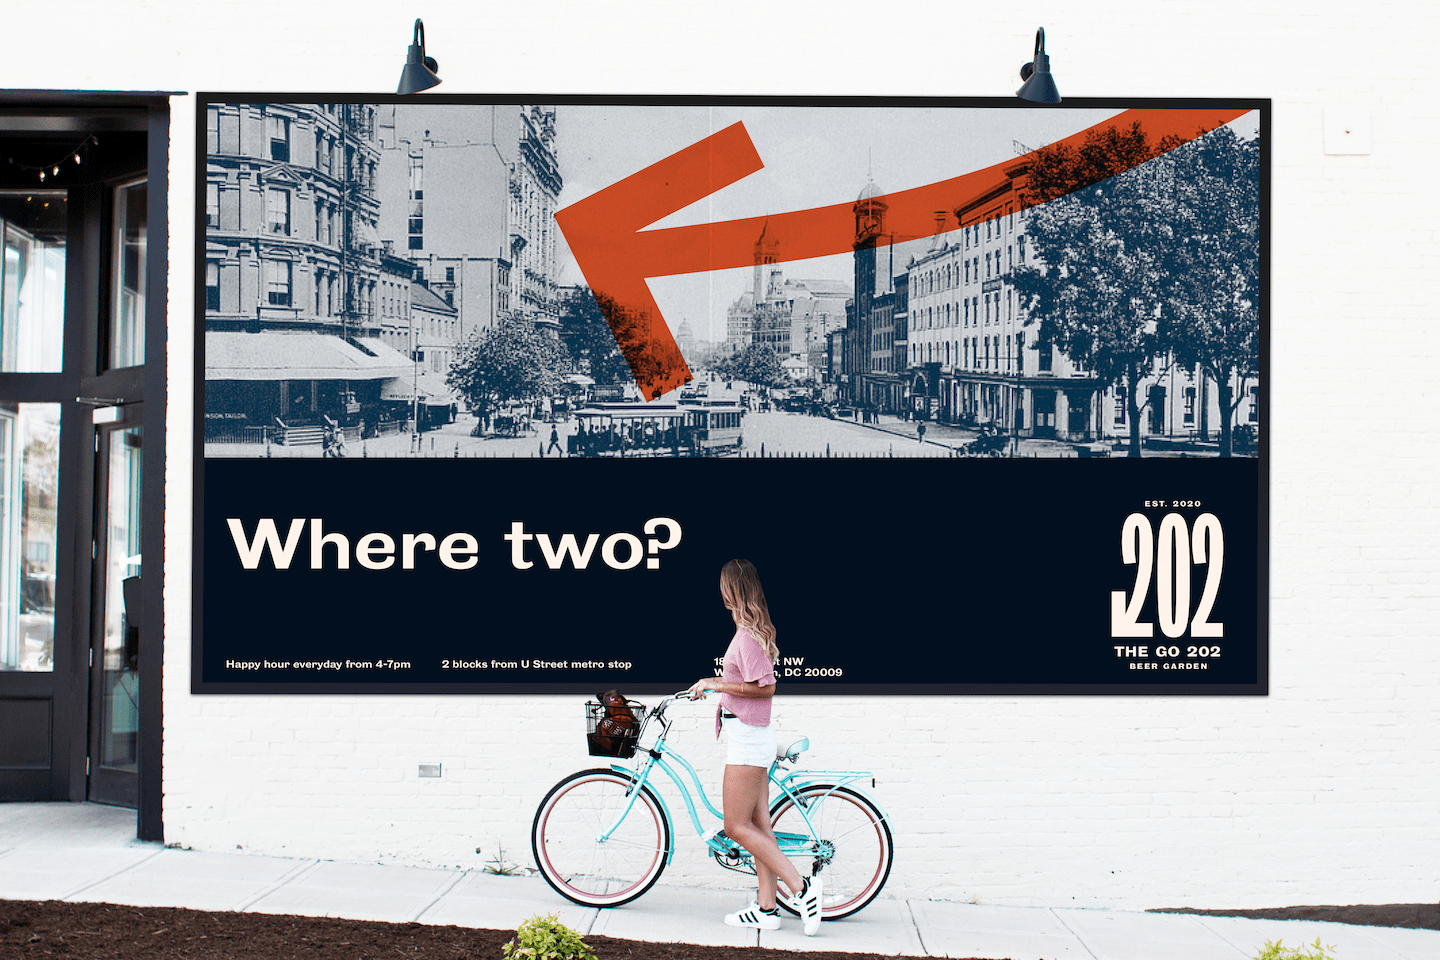 Girl riding bicycle in front of a billboard advertisement for the beer garden